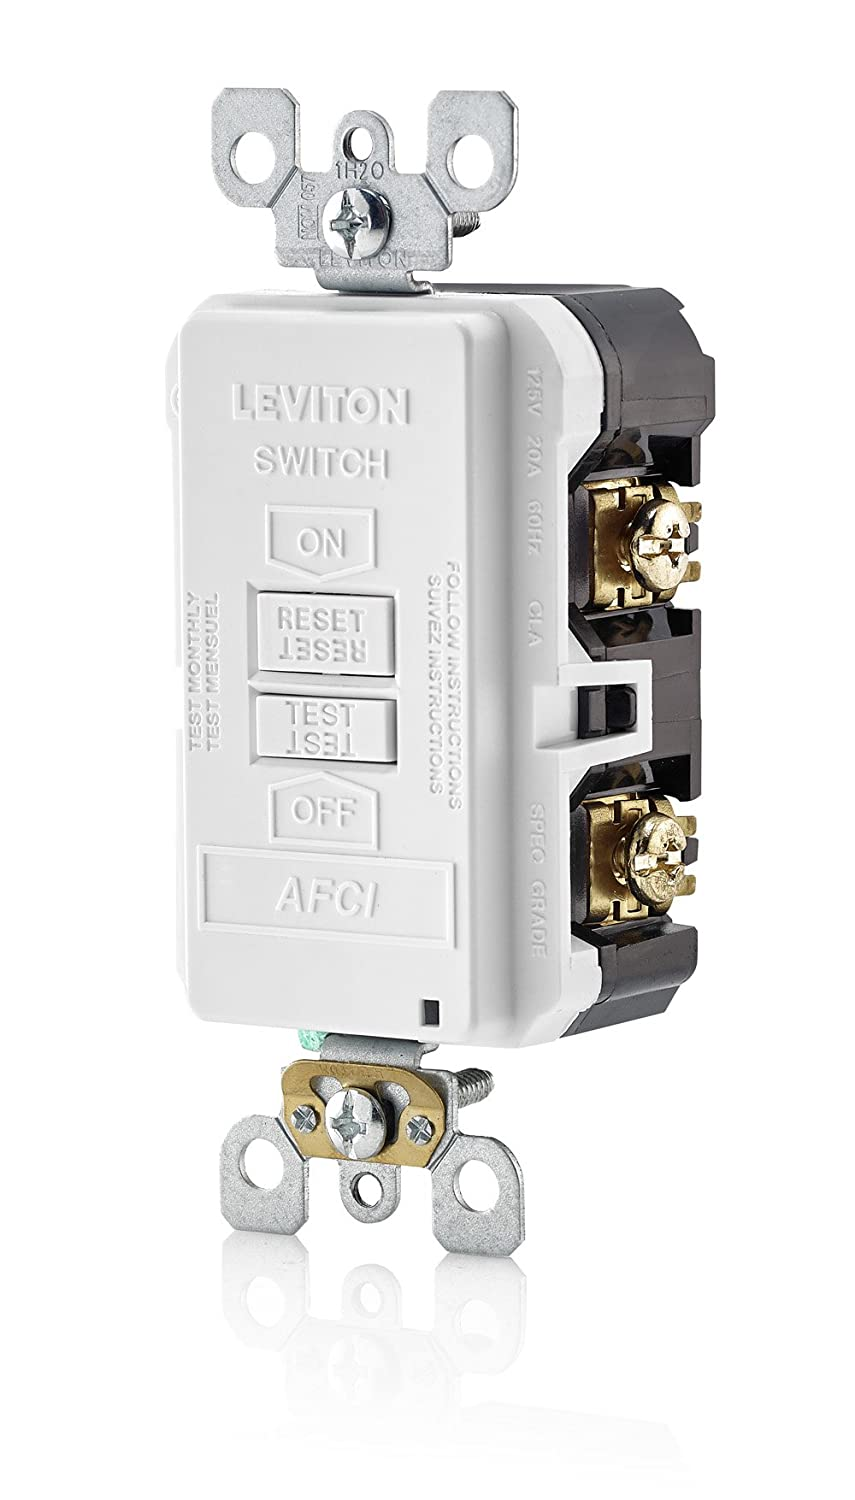 Leviton Afrbf W 20 Amp 120 Volt Smartlockpro Outlet Branch Circuit Light Switch Home Wiring Diagram Afci Arc Fault Interrupter Blank Face Receptacle White